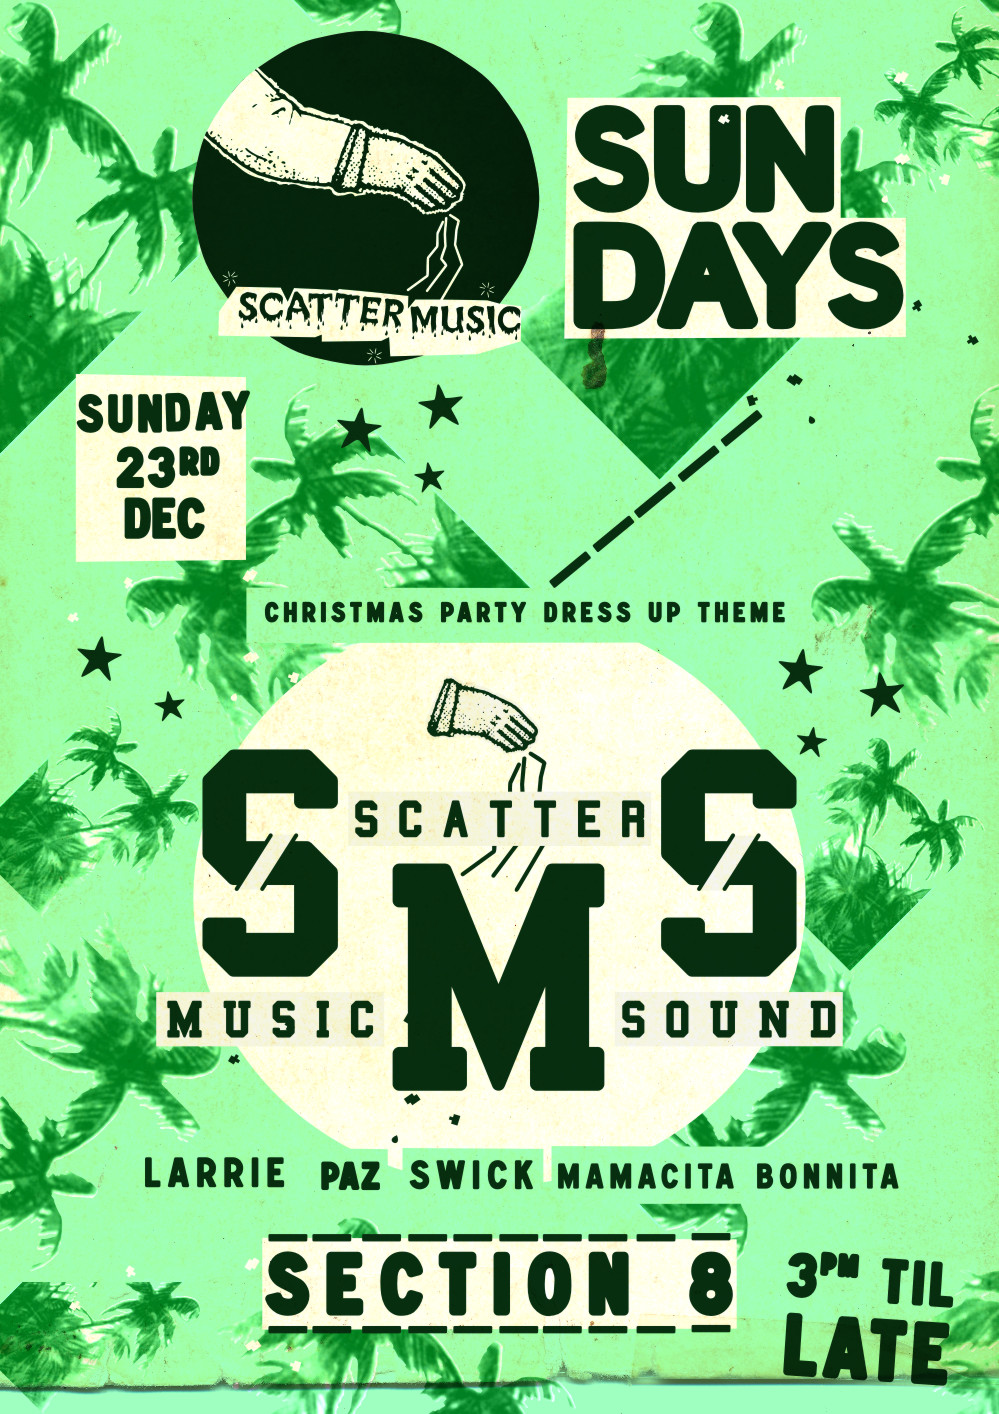 Scattermusic Sundays - December 23 2012 - Xmas Party